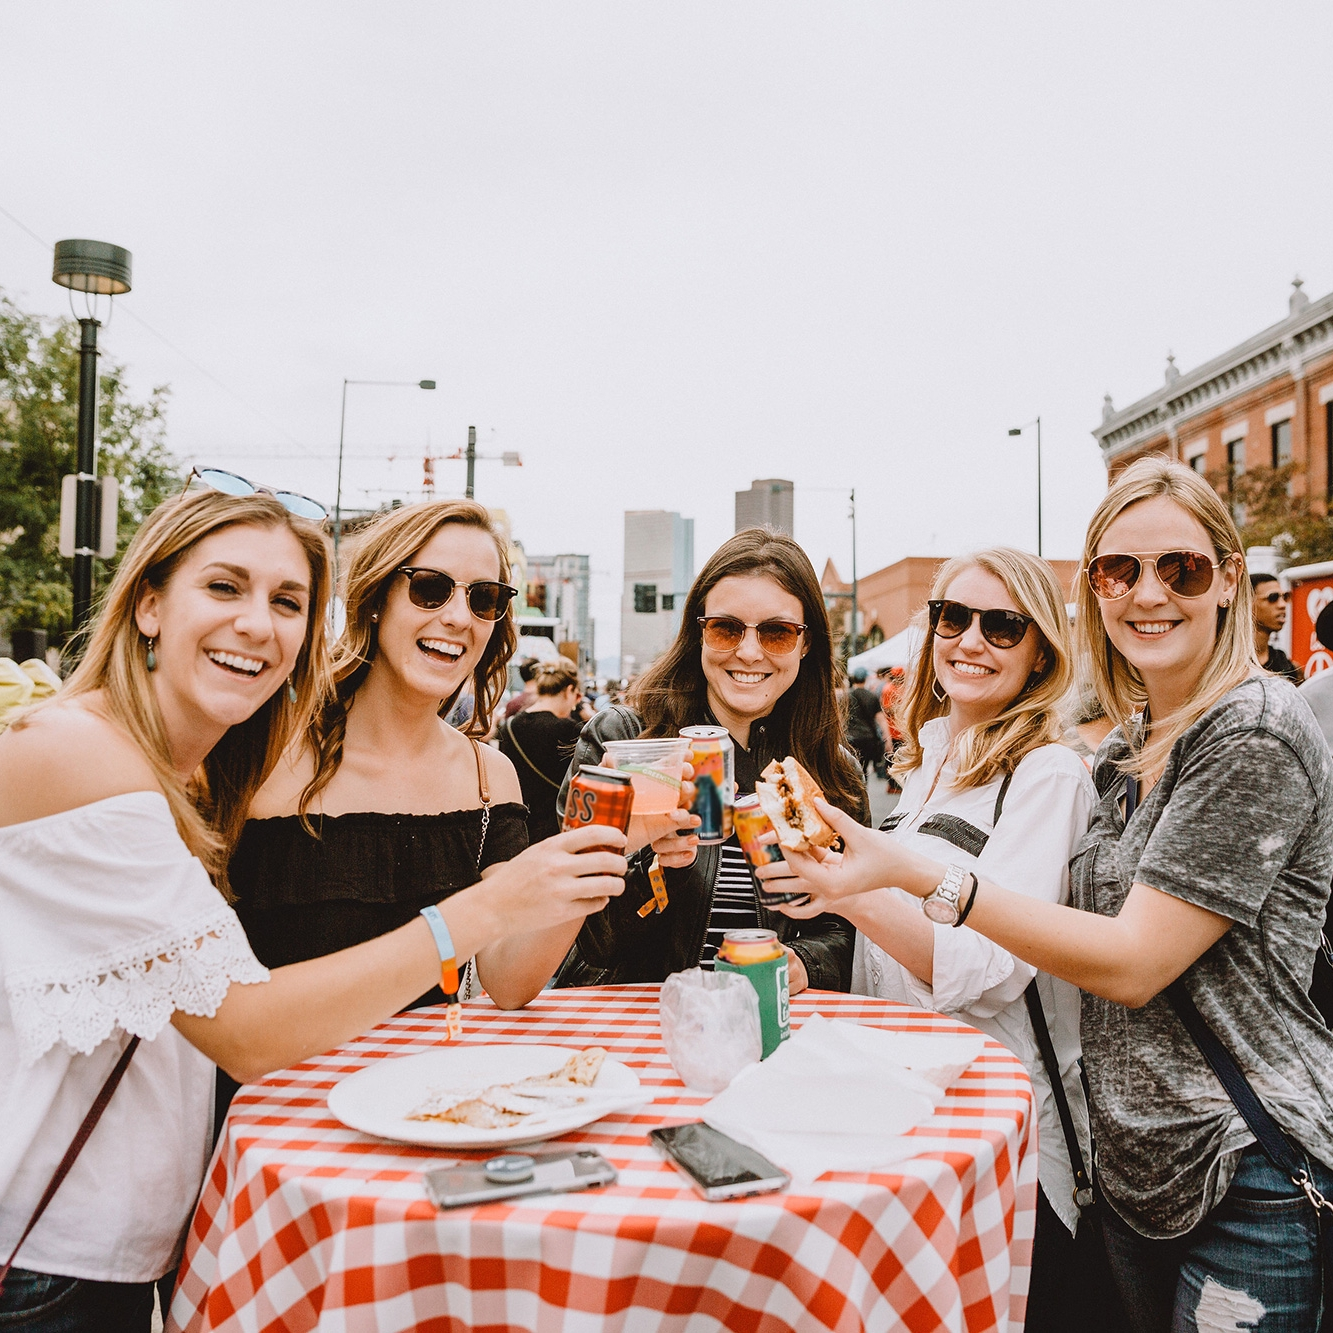 DRINKS - You're going to need something to wash down all that grub, so we invite some of our favorite craft beer, booze, and wine makers to sling drinks throughout the fest. Find an array of tasty bevvies at each stop of Truck Stop!